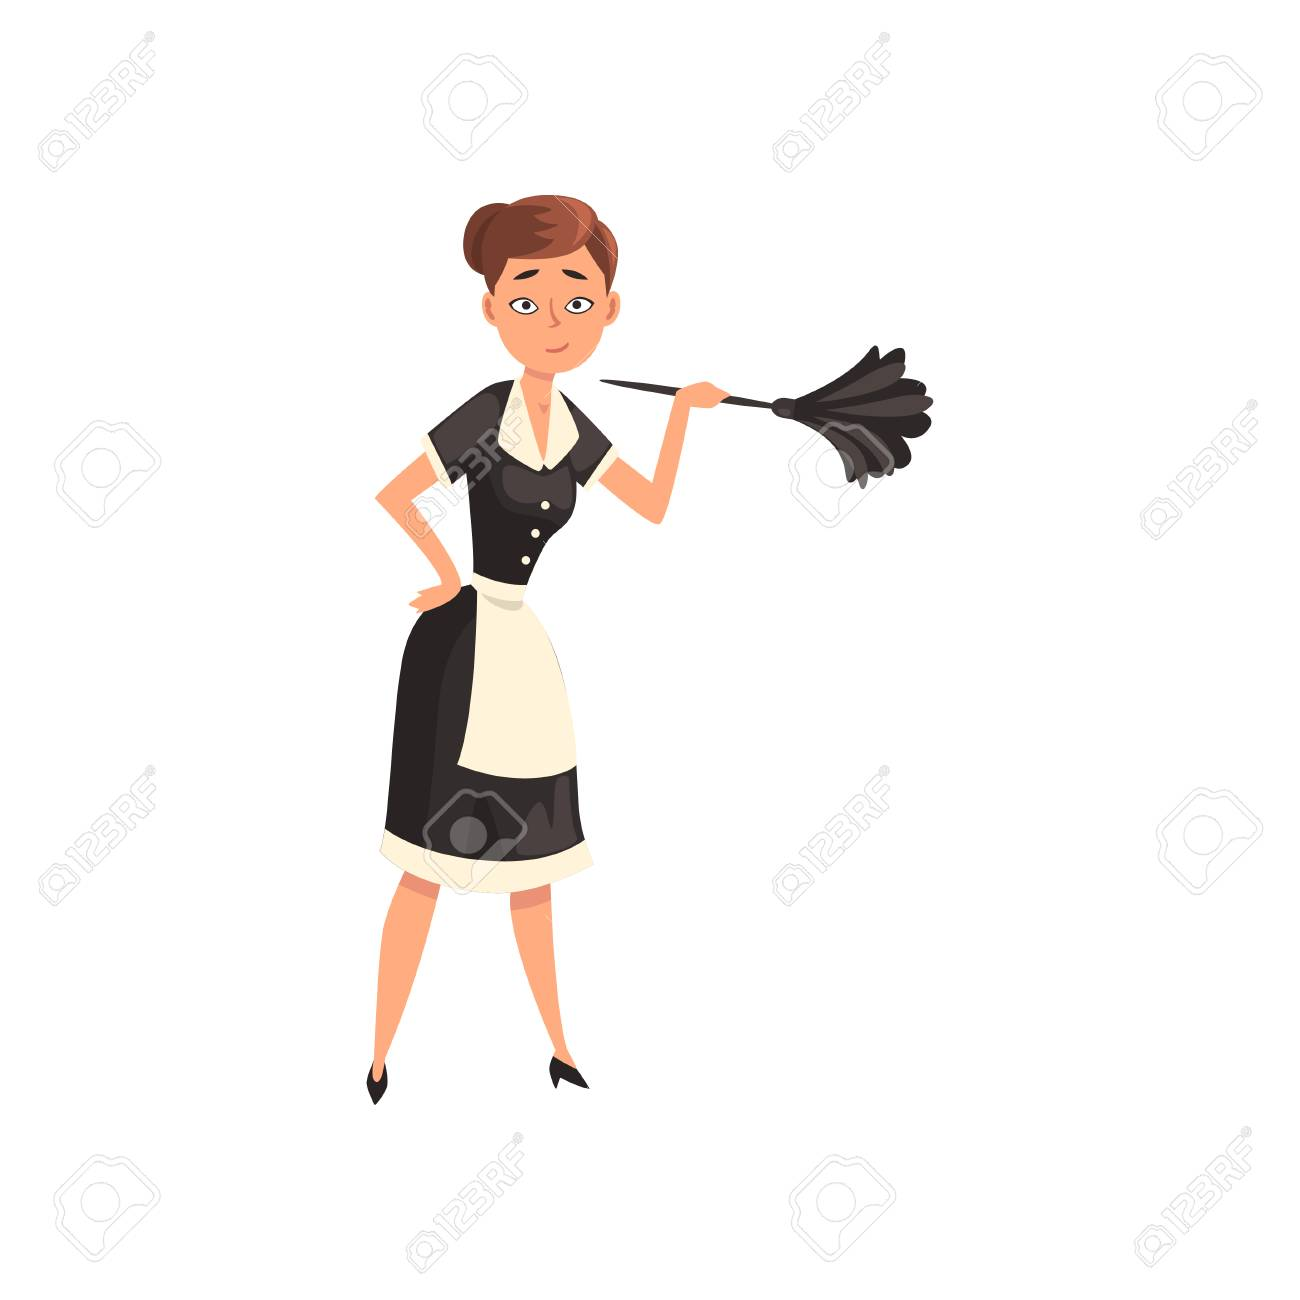 Maid holding a feather duster, housemaid character wearing classic uniform with black dress and white apron, cleaning service vector Illustration isolated on a white background. - 126011682